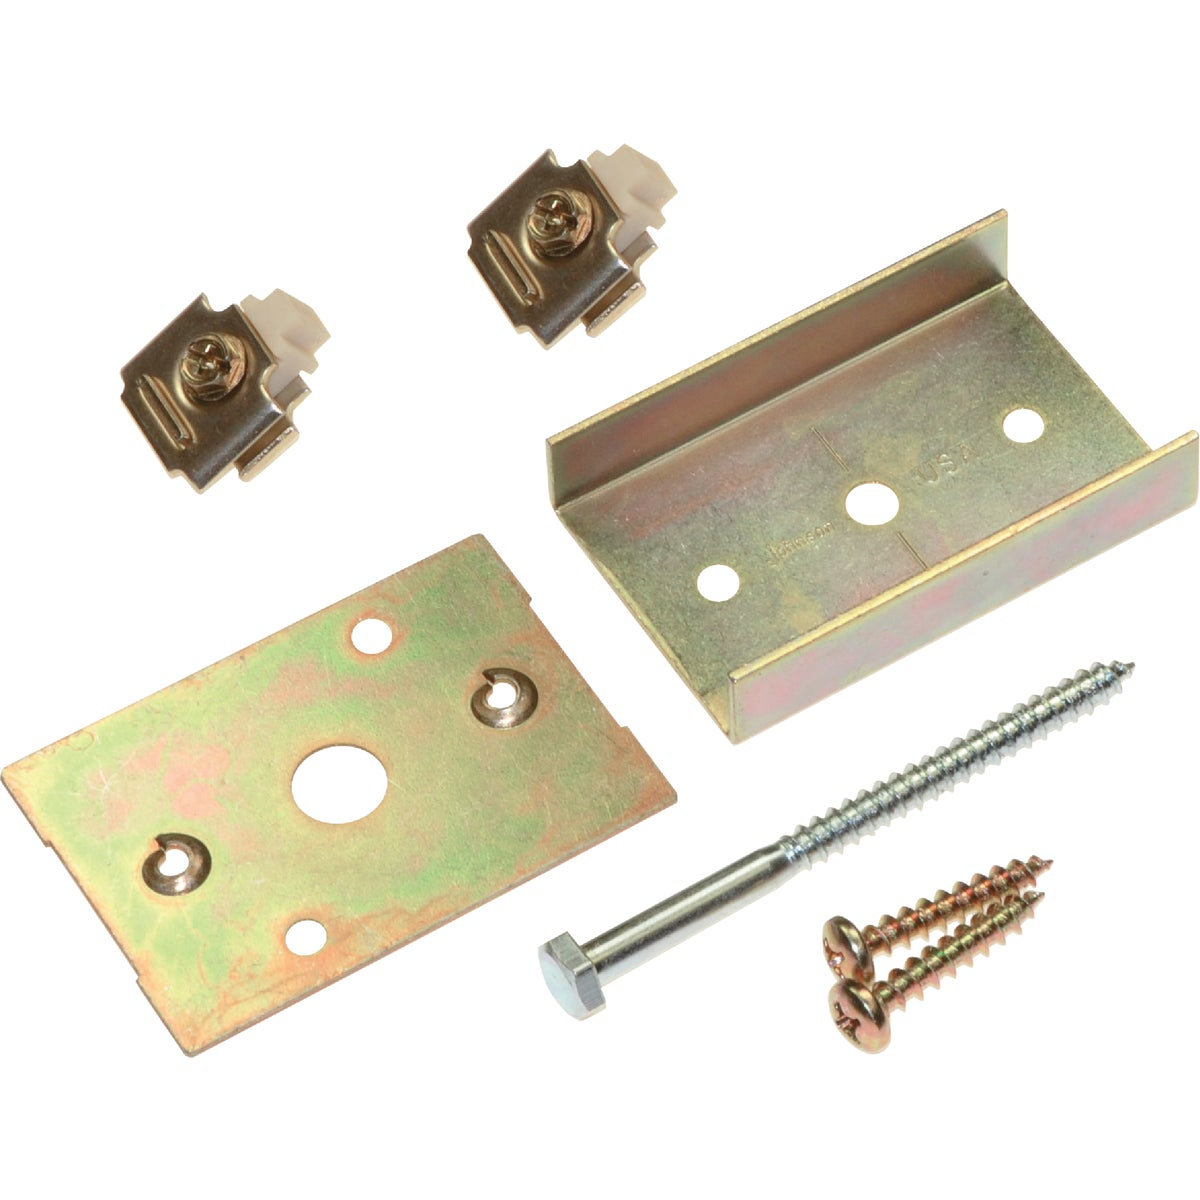 CONVERGING DOOR KIT - 1555PPK3 by Johnson Products